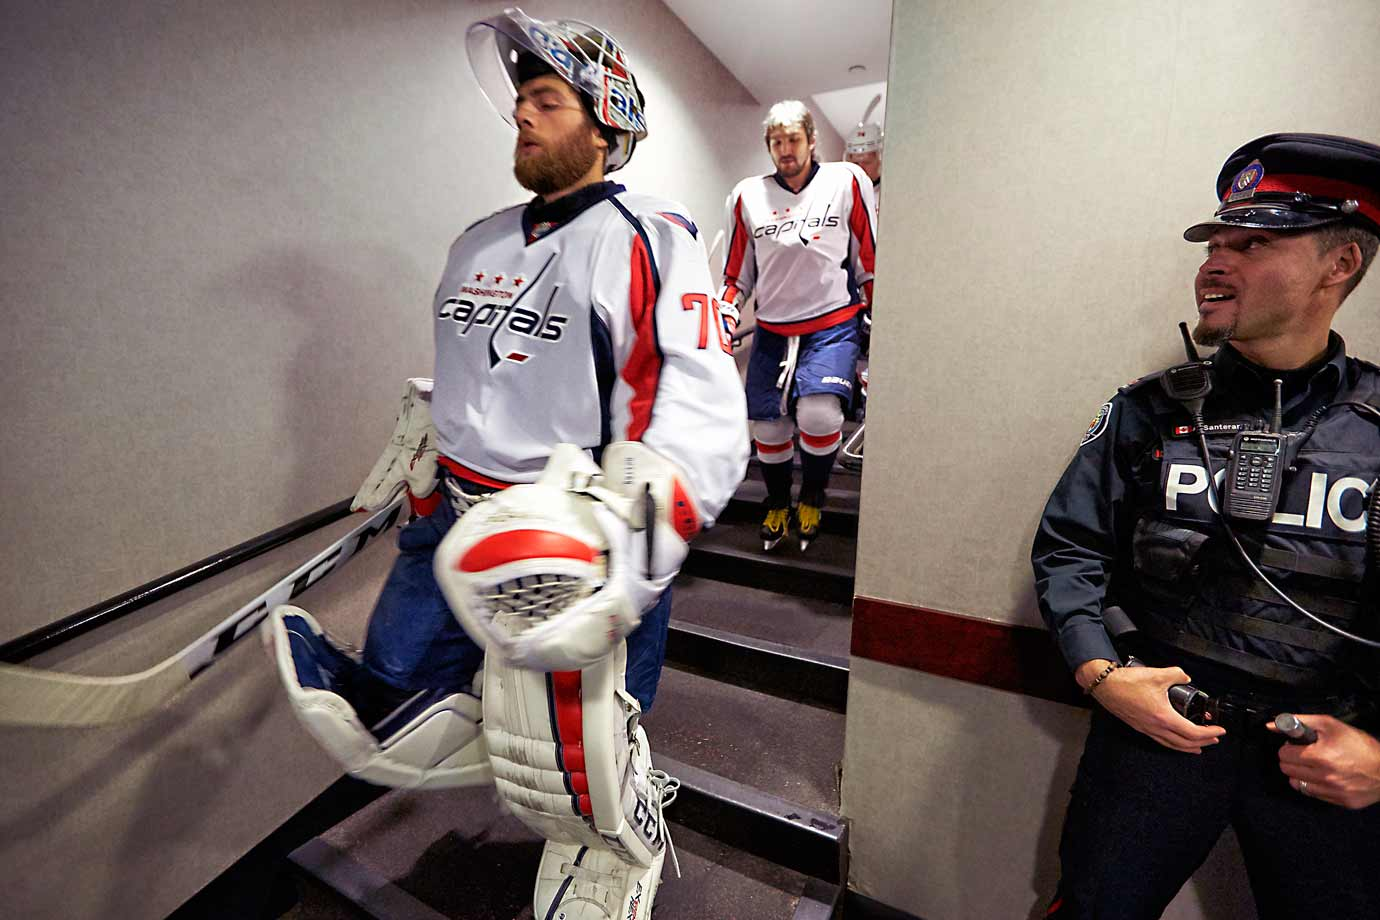 At 6:35 p.m. the Caps' star netminder leads the team out for its pregame skate.